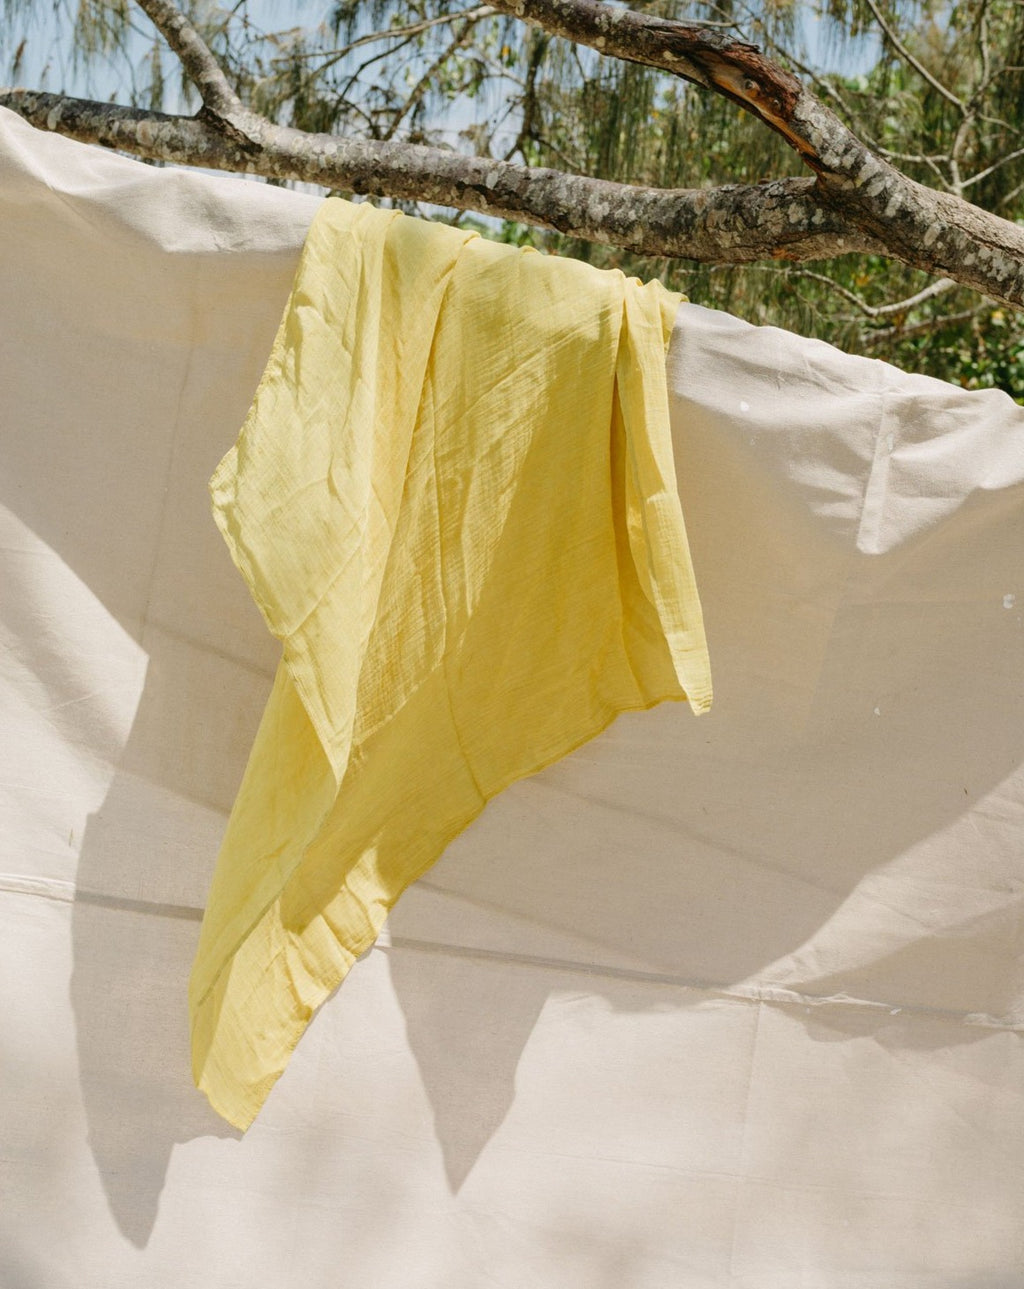 plant dyed lemon earth wrap hanging - summer swaddle wraps -swaddling in summer - swaddle muslin wrap - baby swaddle - baby wrapping - swaddle wrap - baby muslin wrap - newborn swaddle